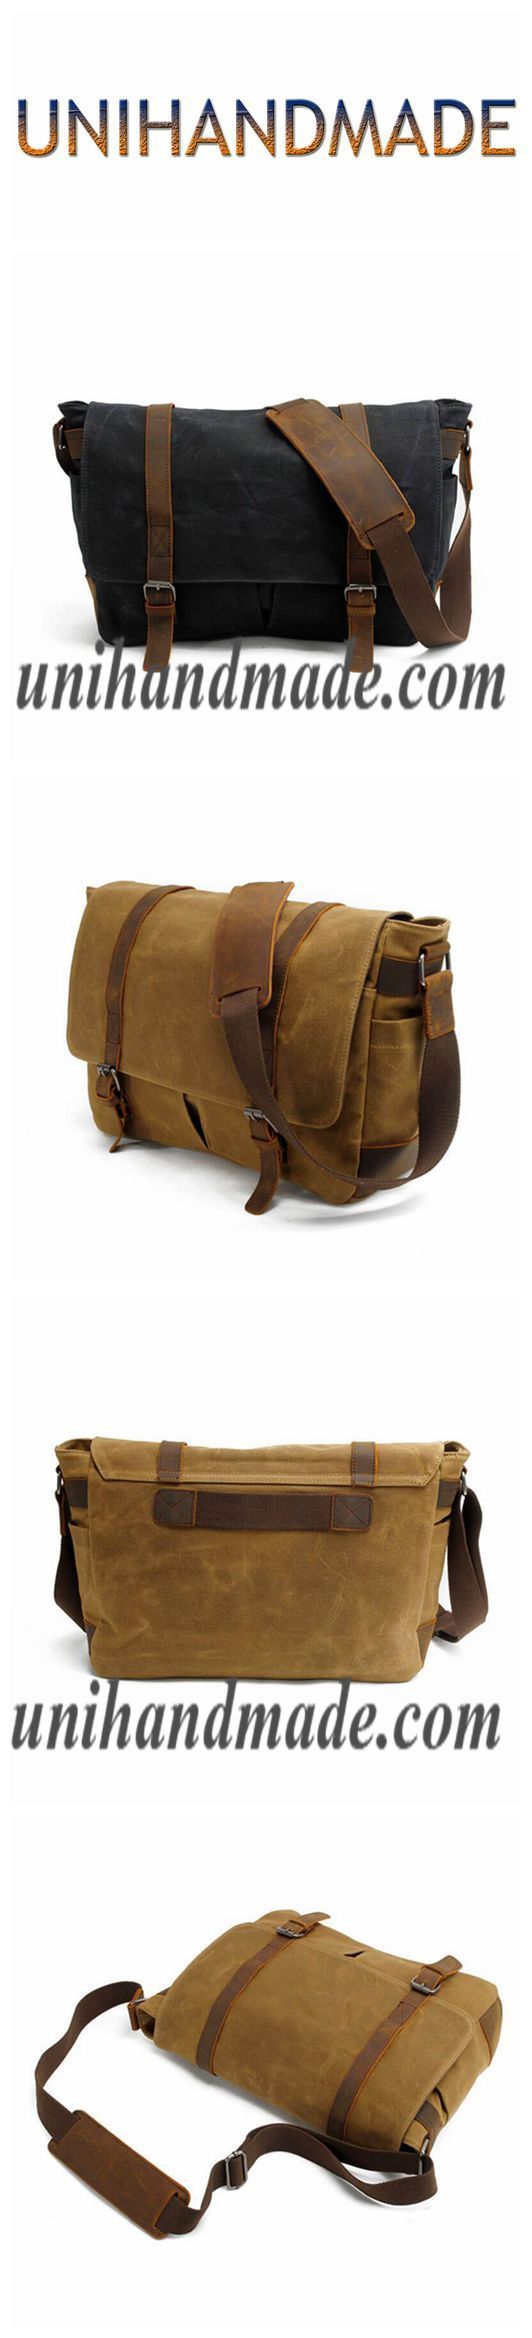 Mens Messenger Bag,Canvas Messenger Bag,Leather Canvas Bag MC16930